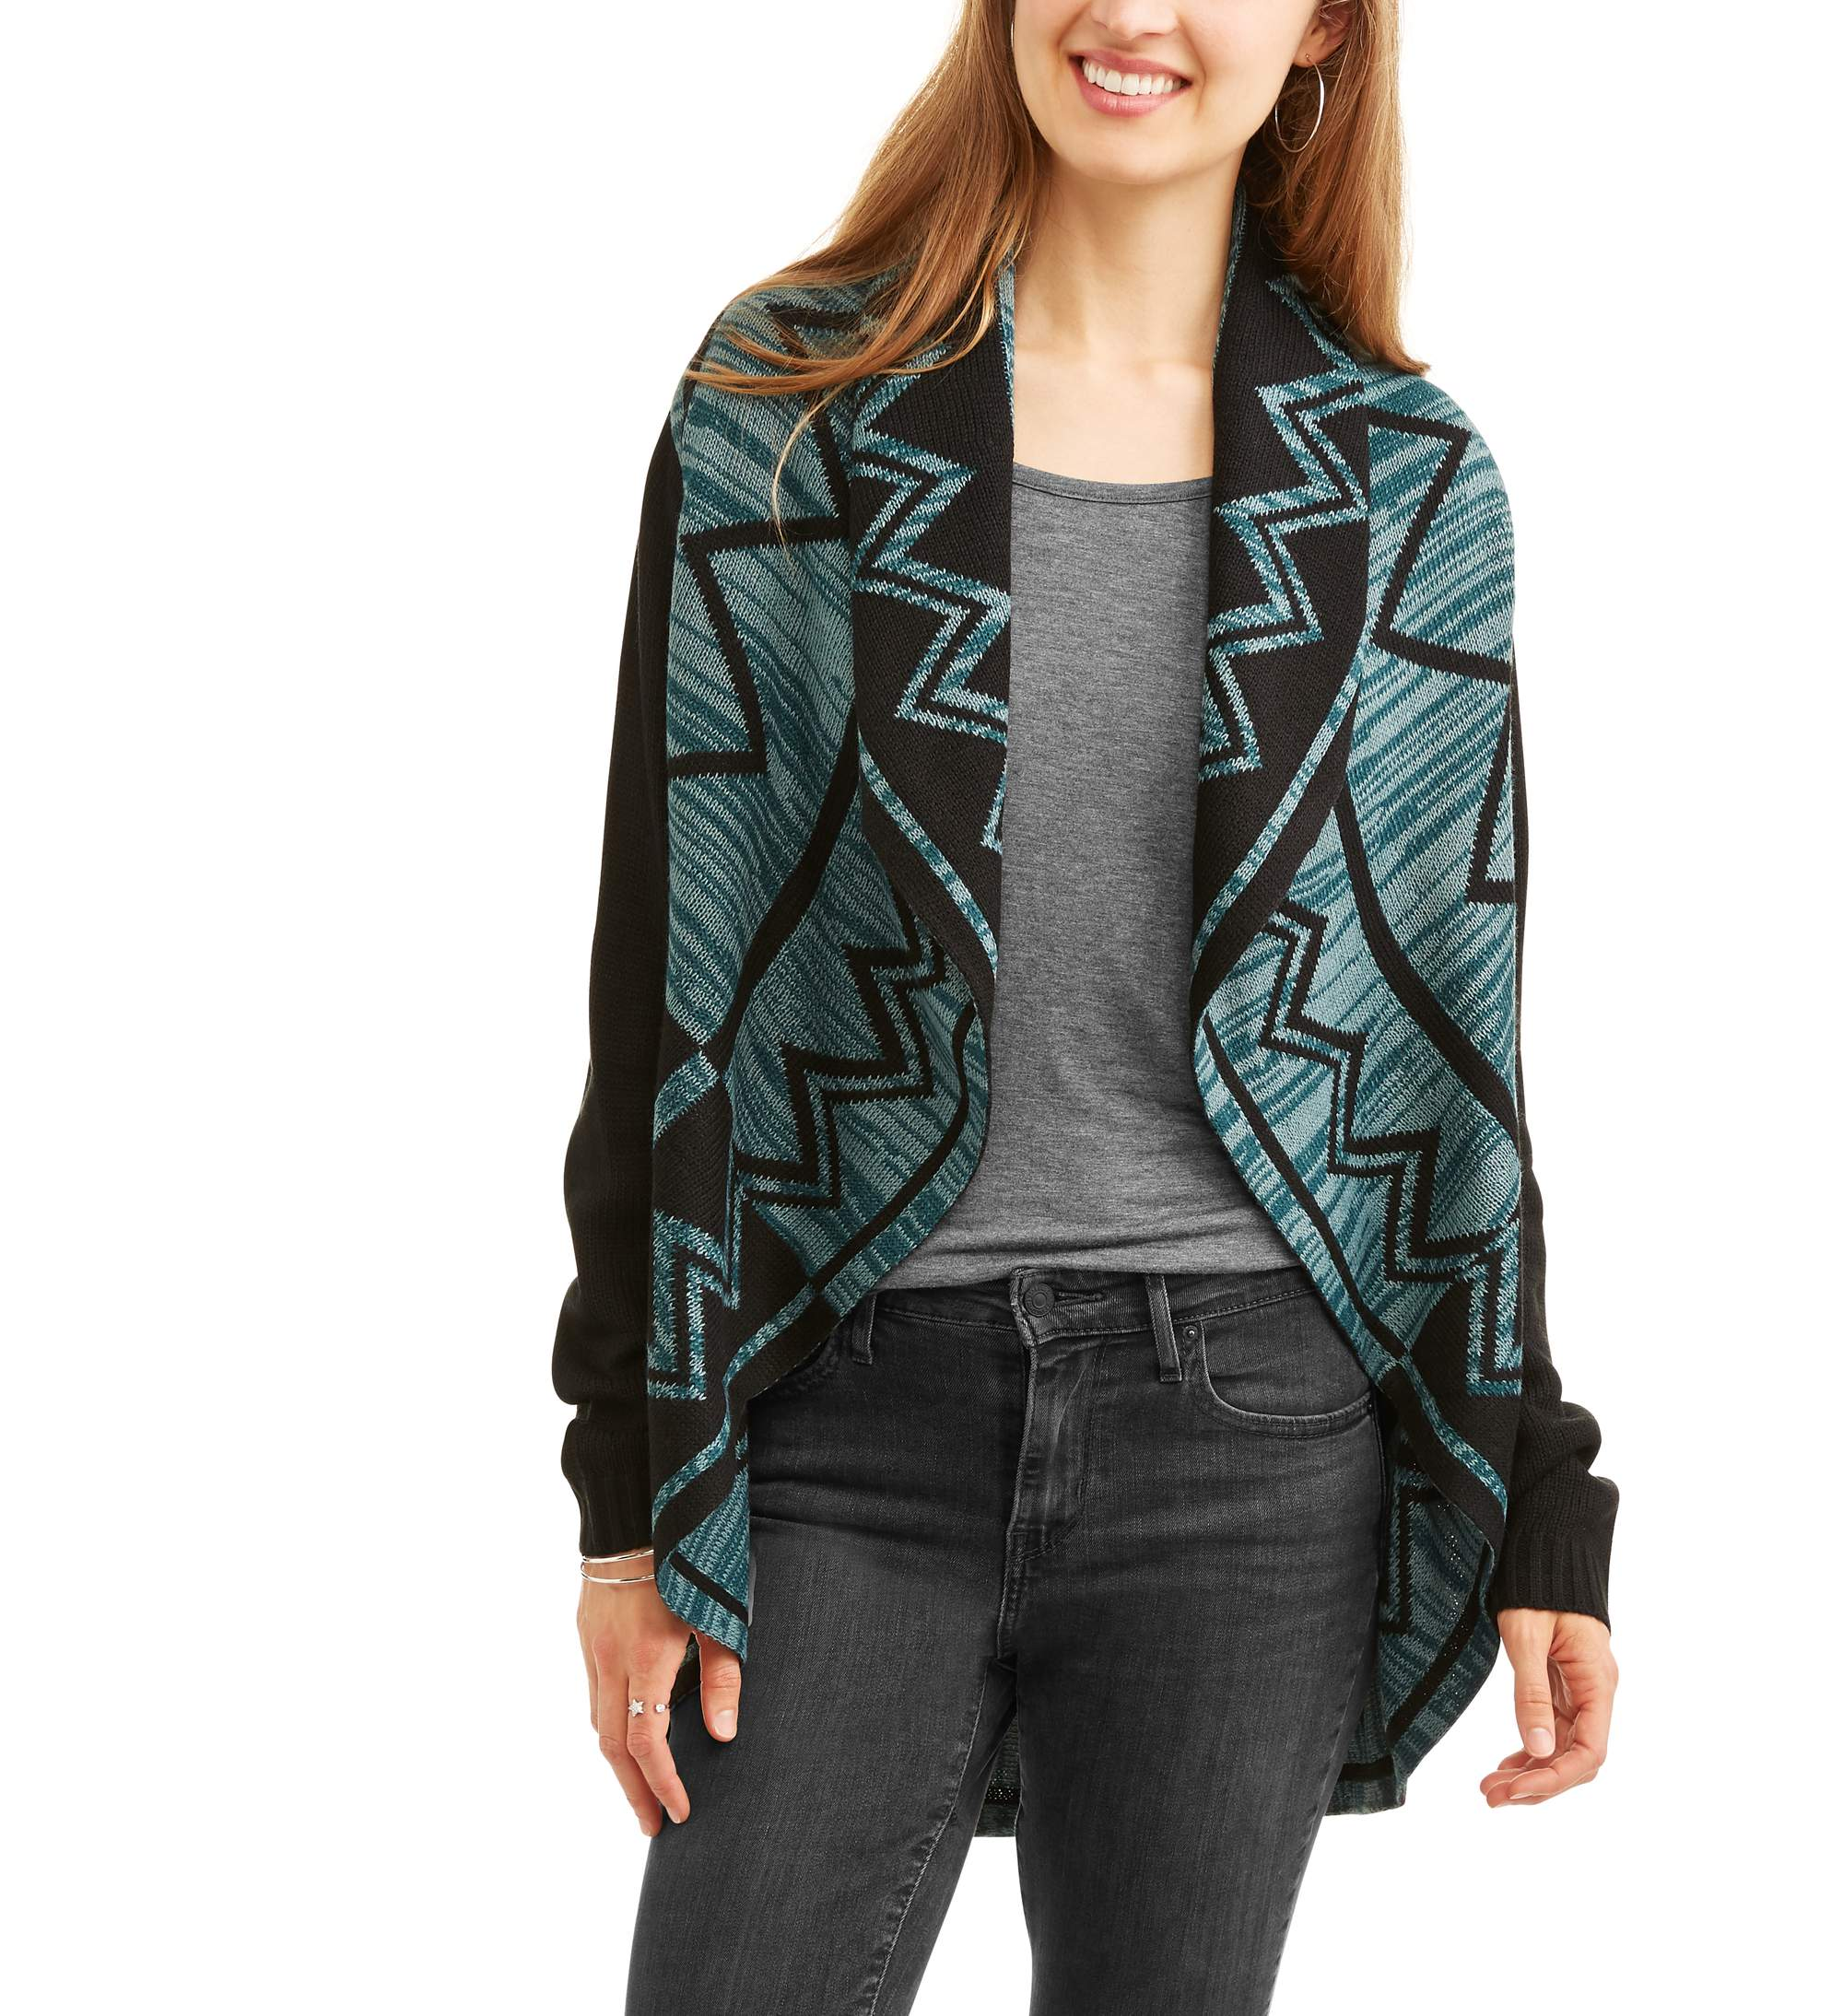 Allison Brittney Women's Marled Aztec Shawl Cardigan